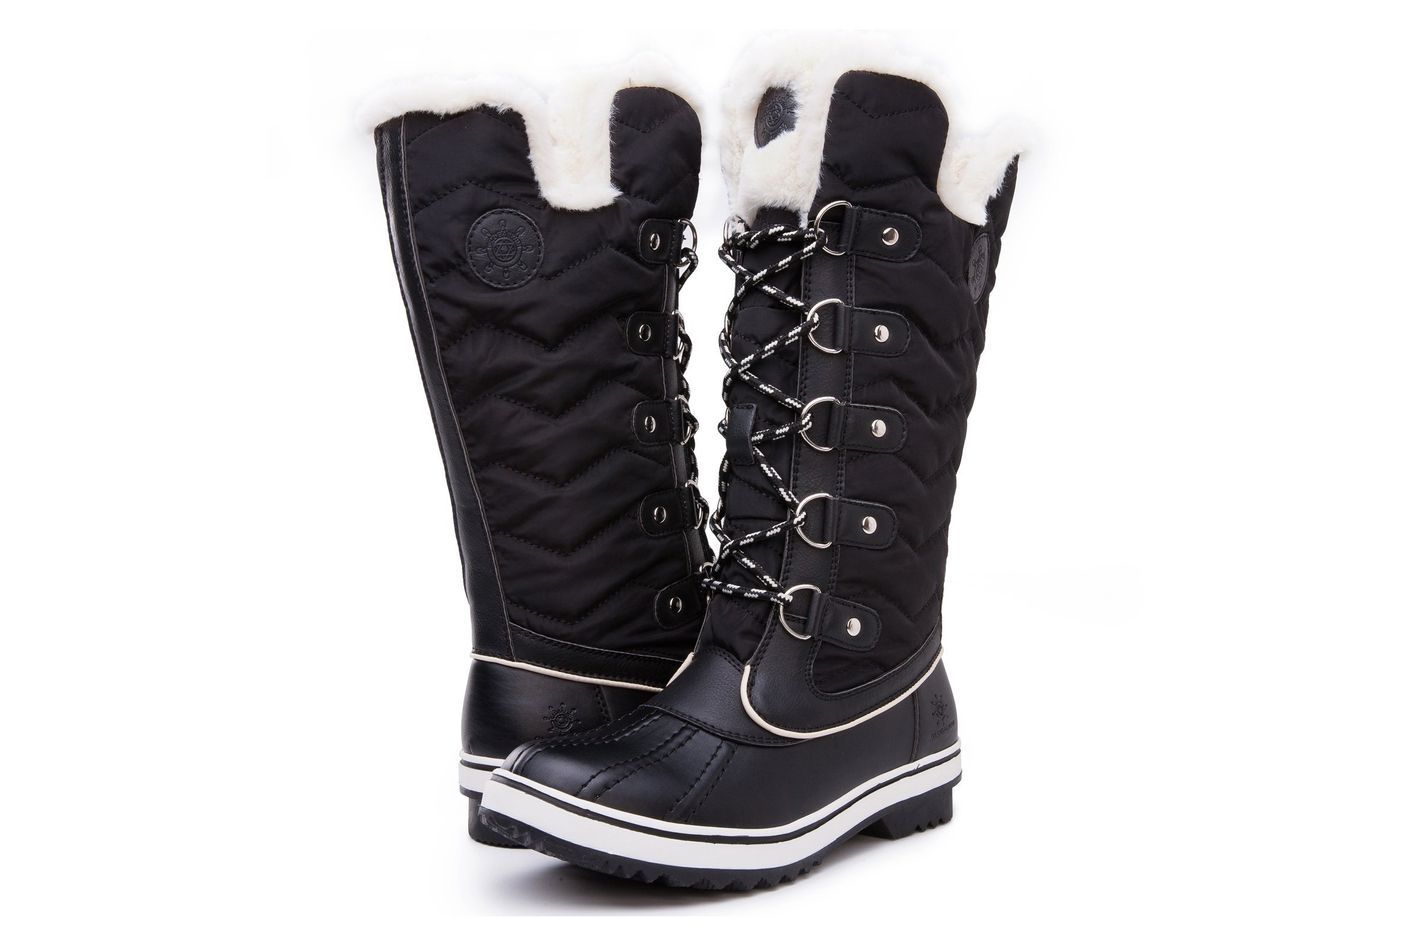 Kingshow Women s Global Win Waterproof Winter Boots fb953d9a1